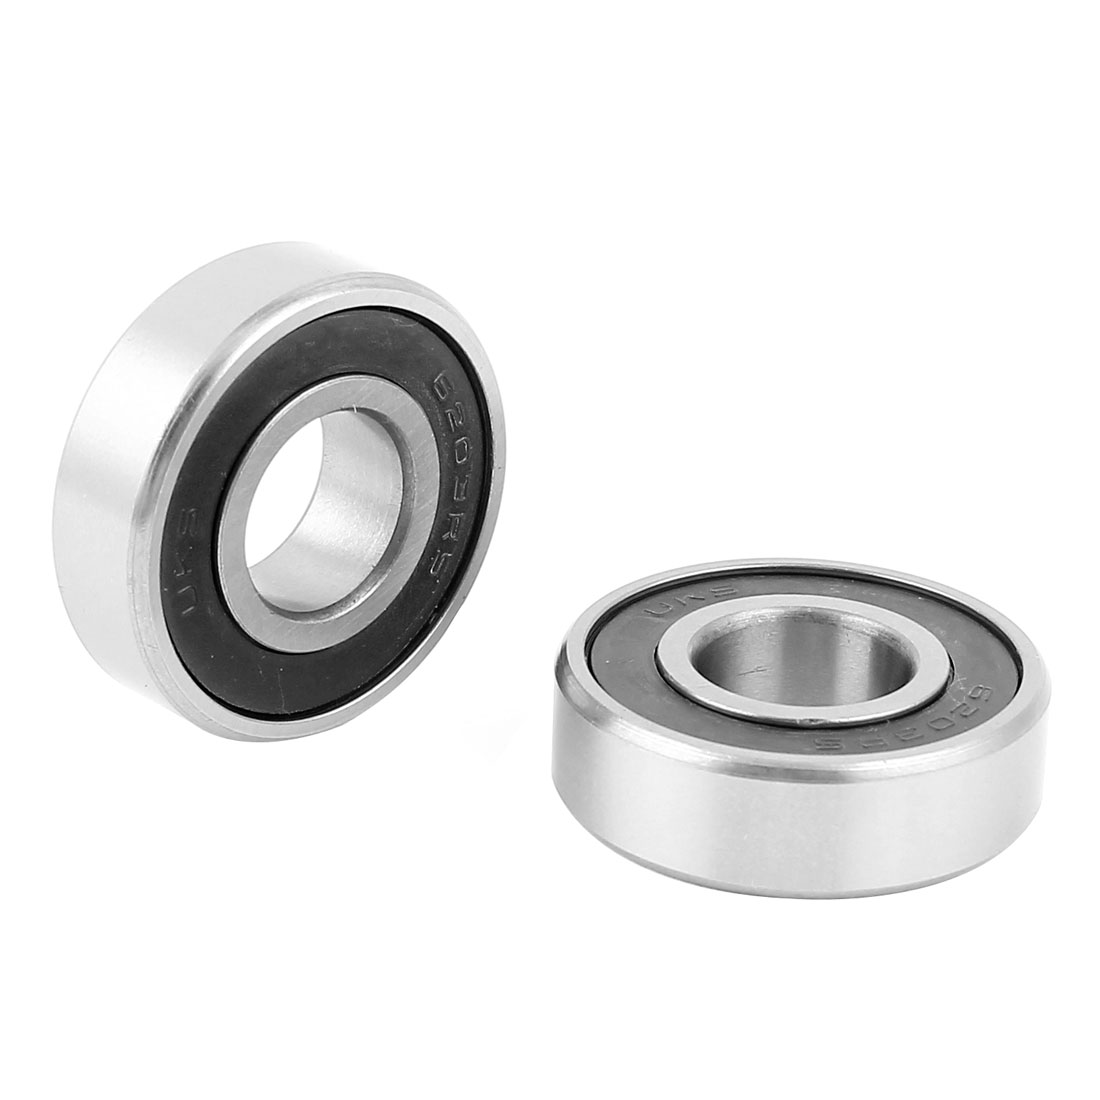 2pcs 6203RS 40mm x 17mm x 12mm Metal Shielded Single Row Deep Groove Ball Bearing for Electric Motor